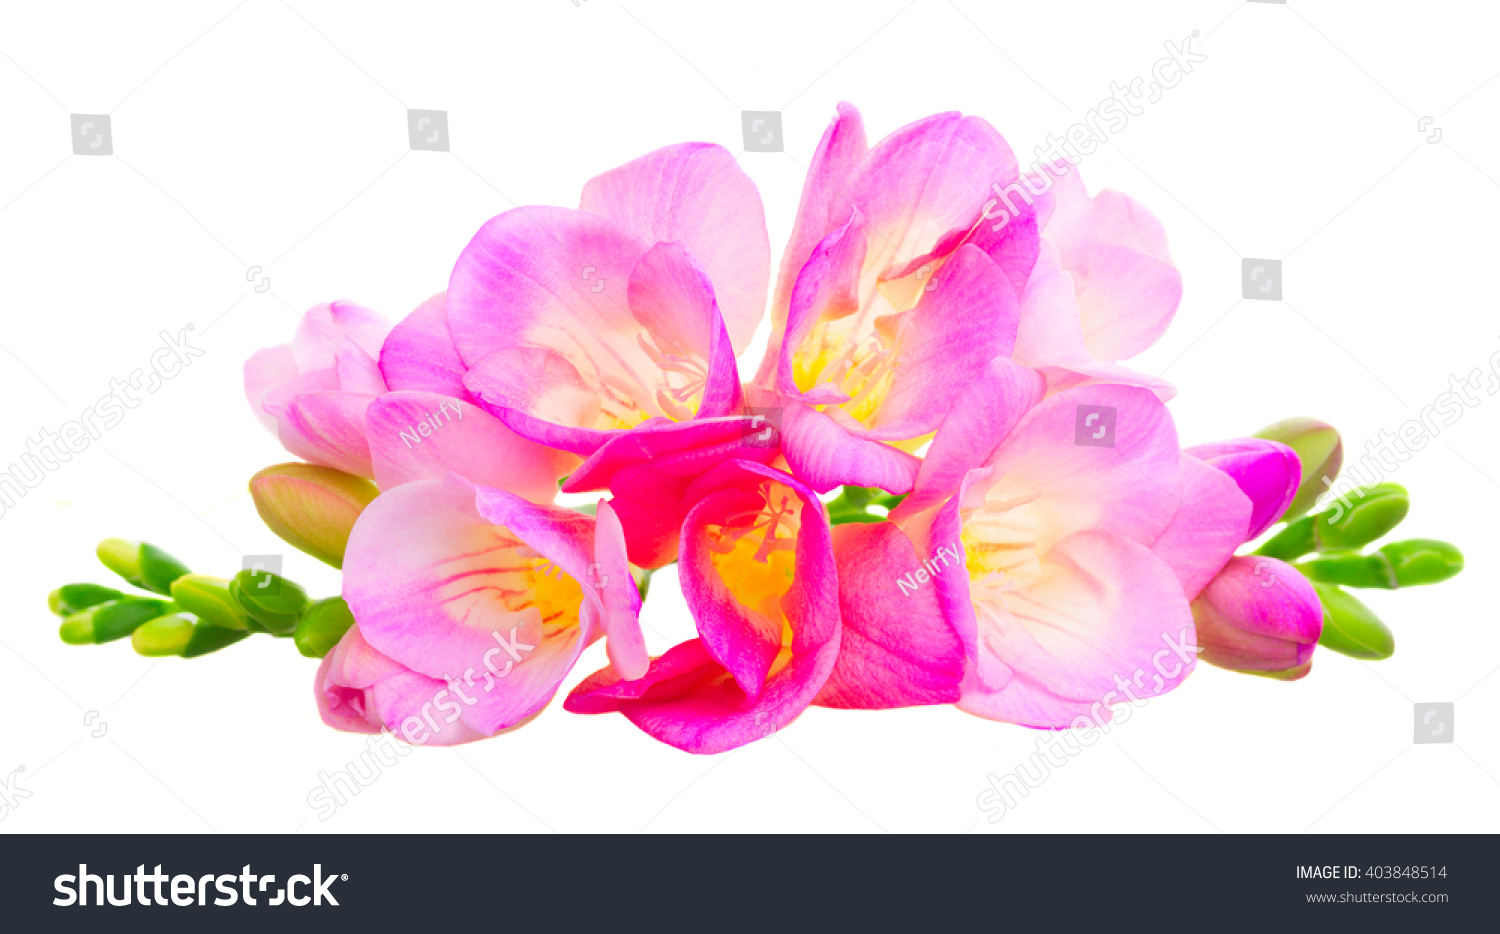 Pile fresh pink freesia flowers buds stock photo 403848514 pile of fresh pink freesia flowers with buds isolated on white background mightylinksfo